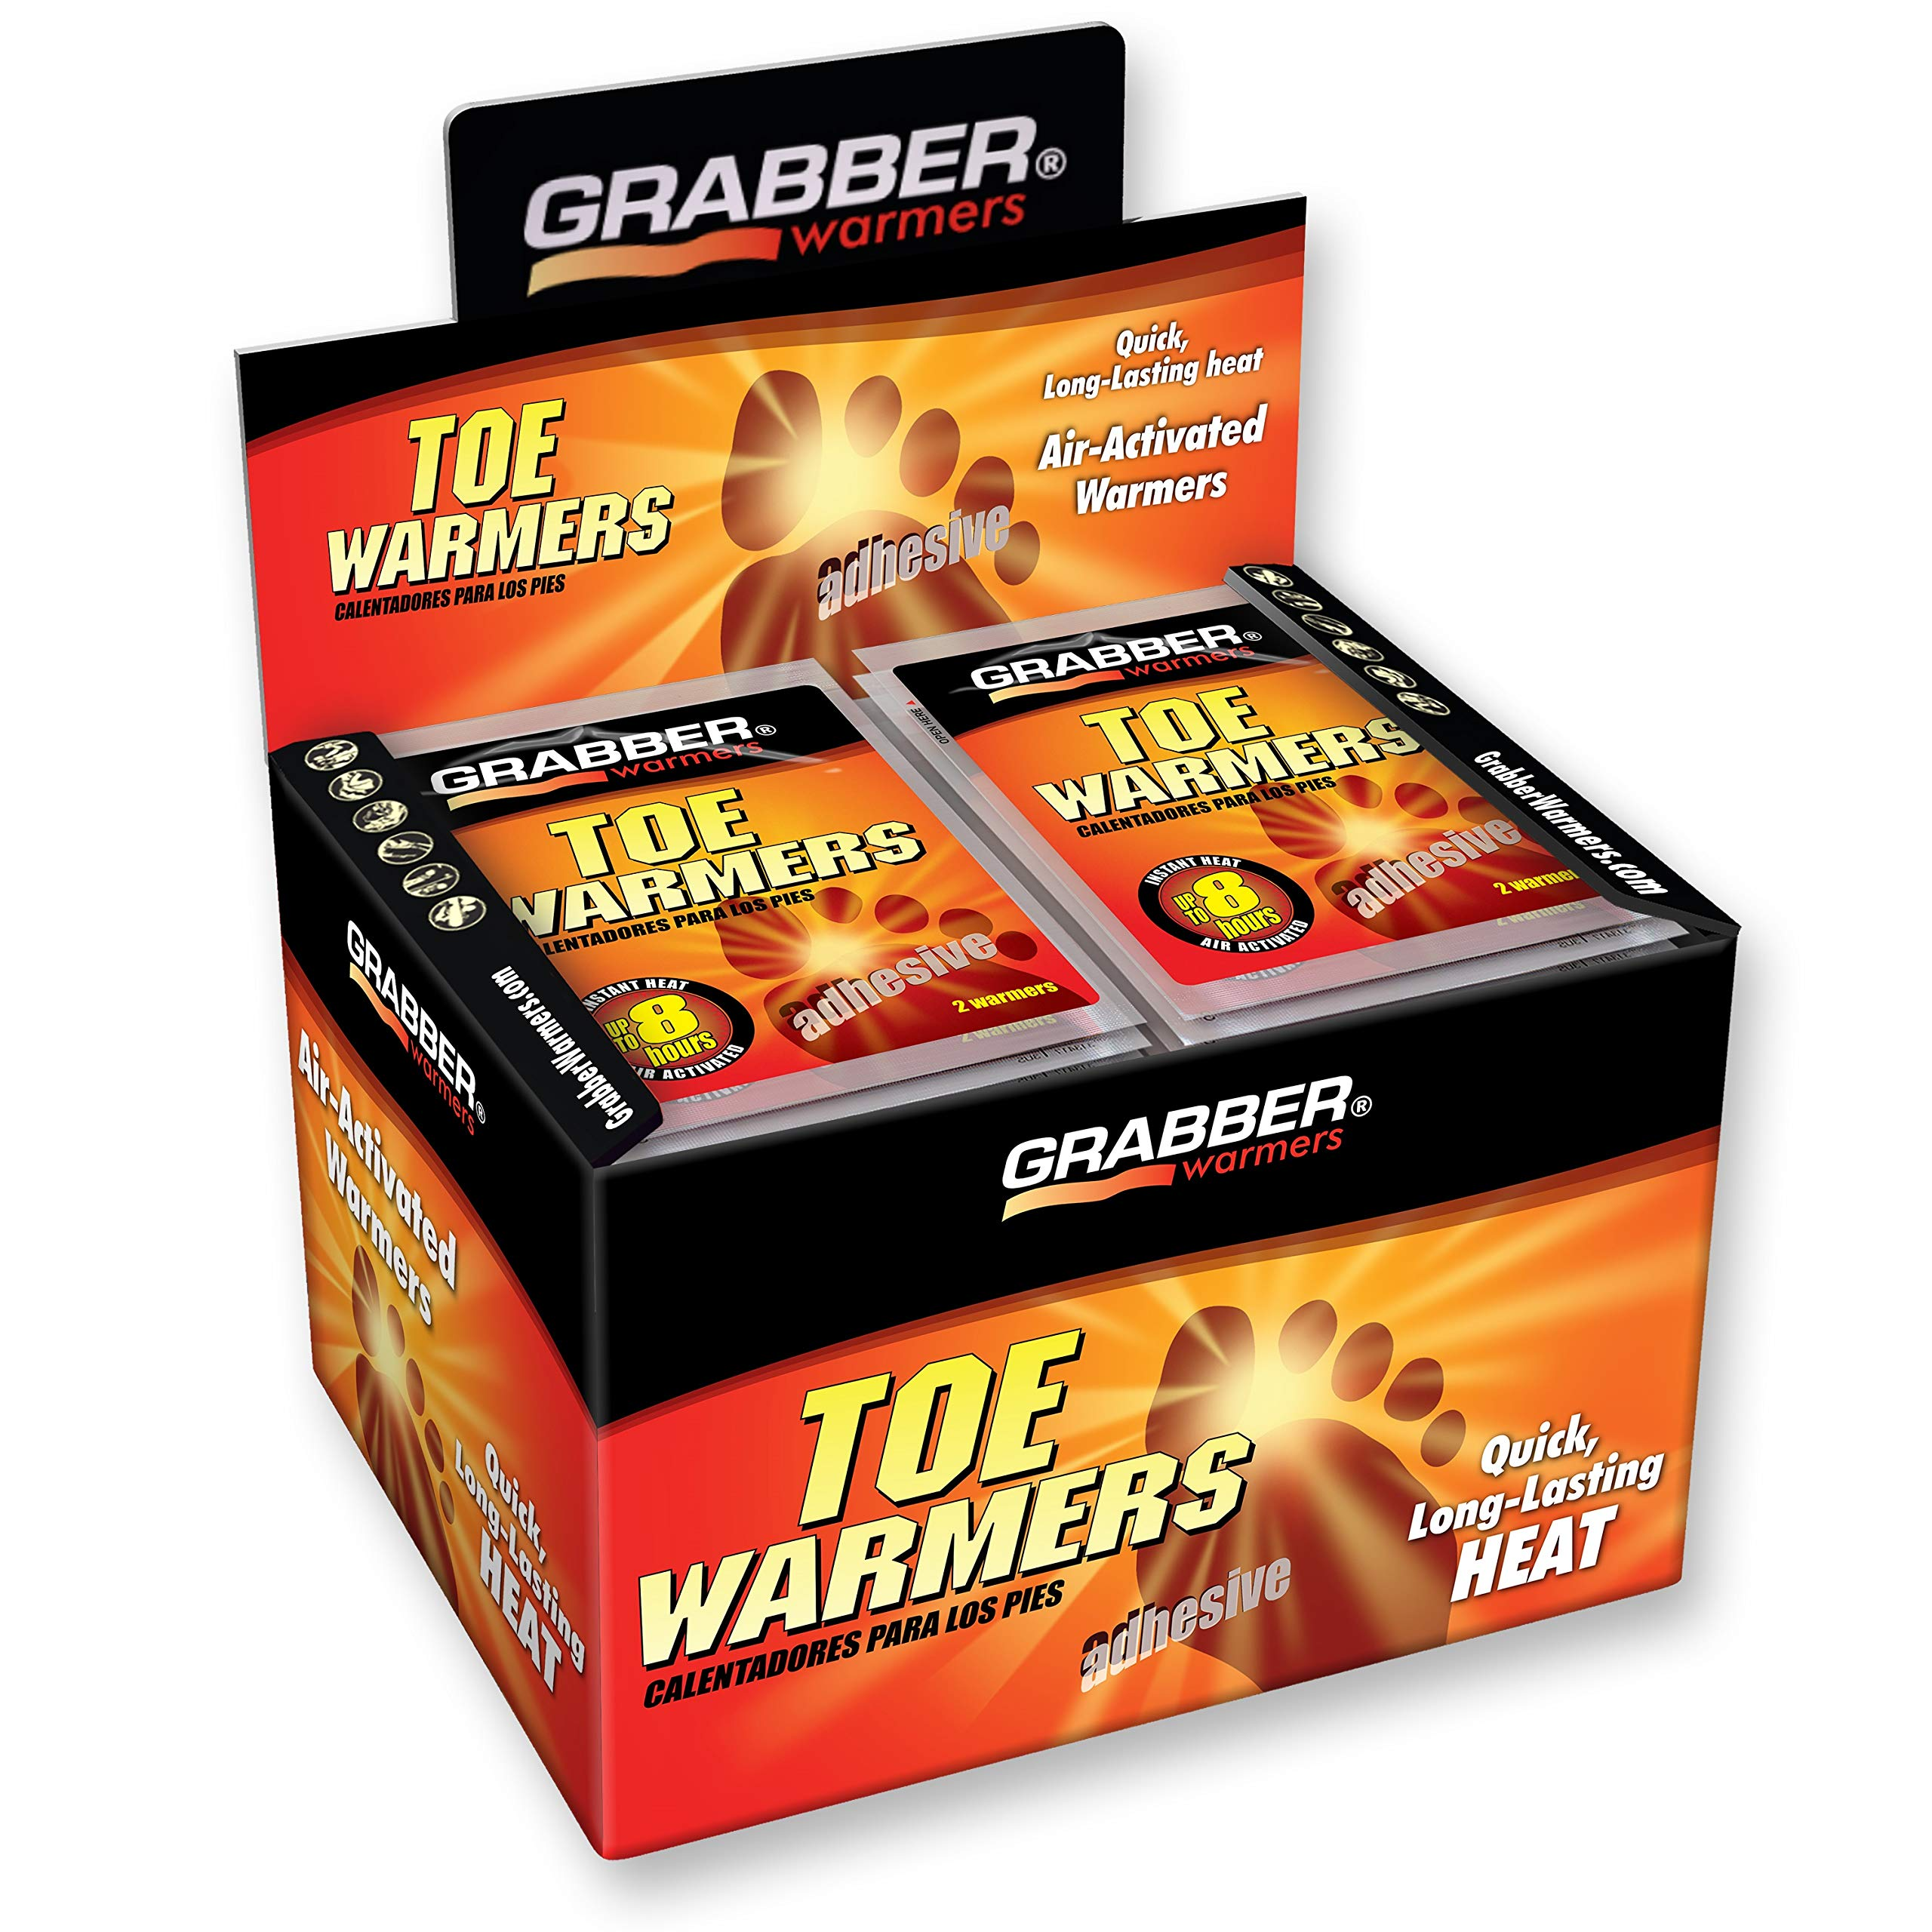 Grabber Toe Warmers, 40 pairs by Grabber